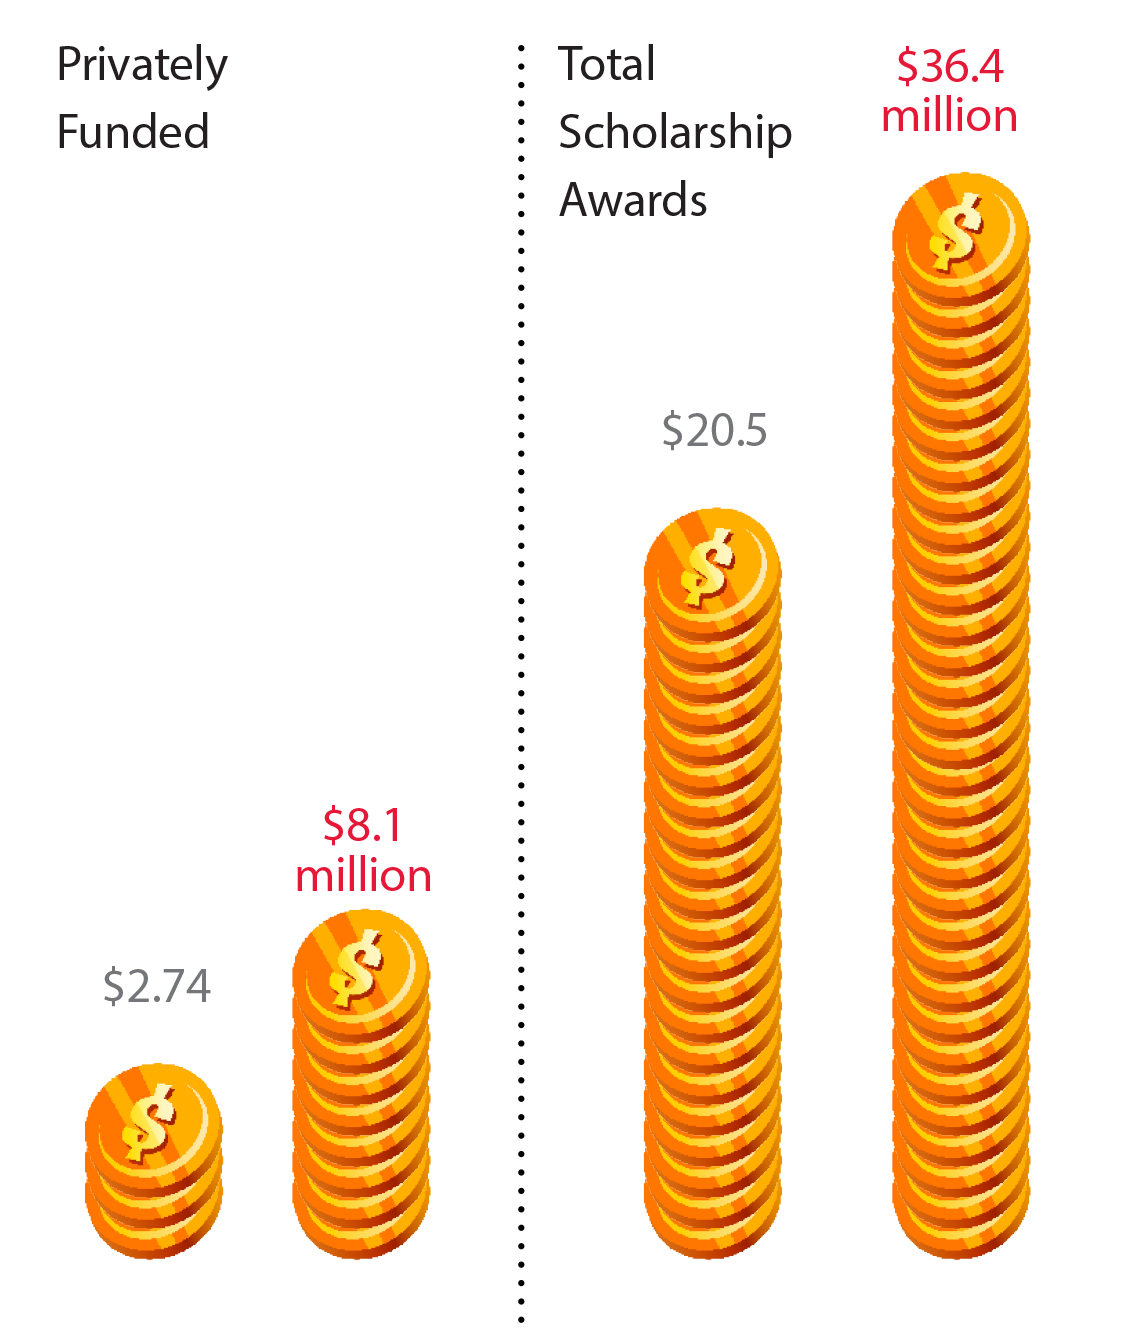 Scholarships graphic. See table below.